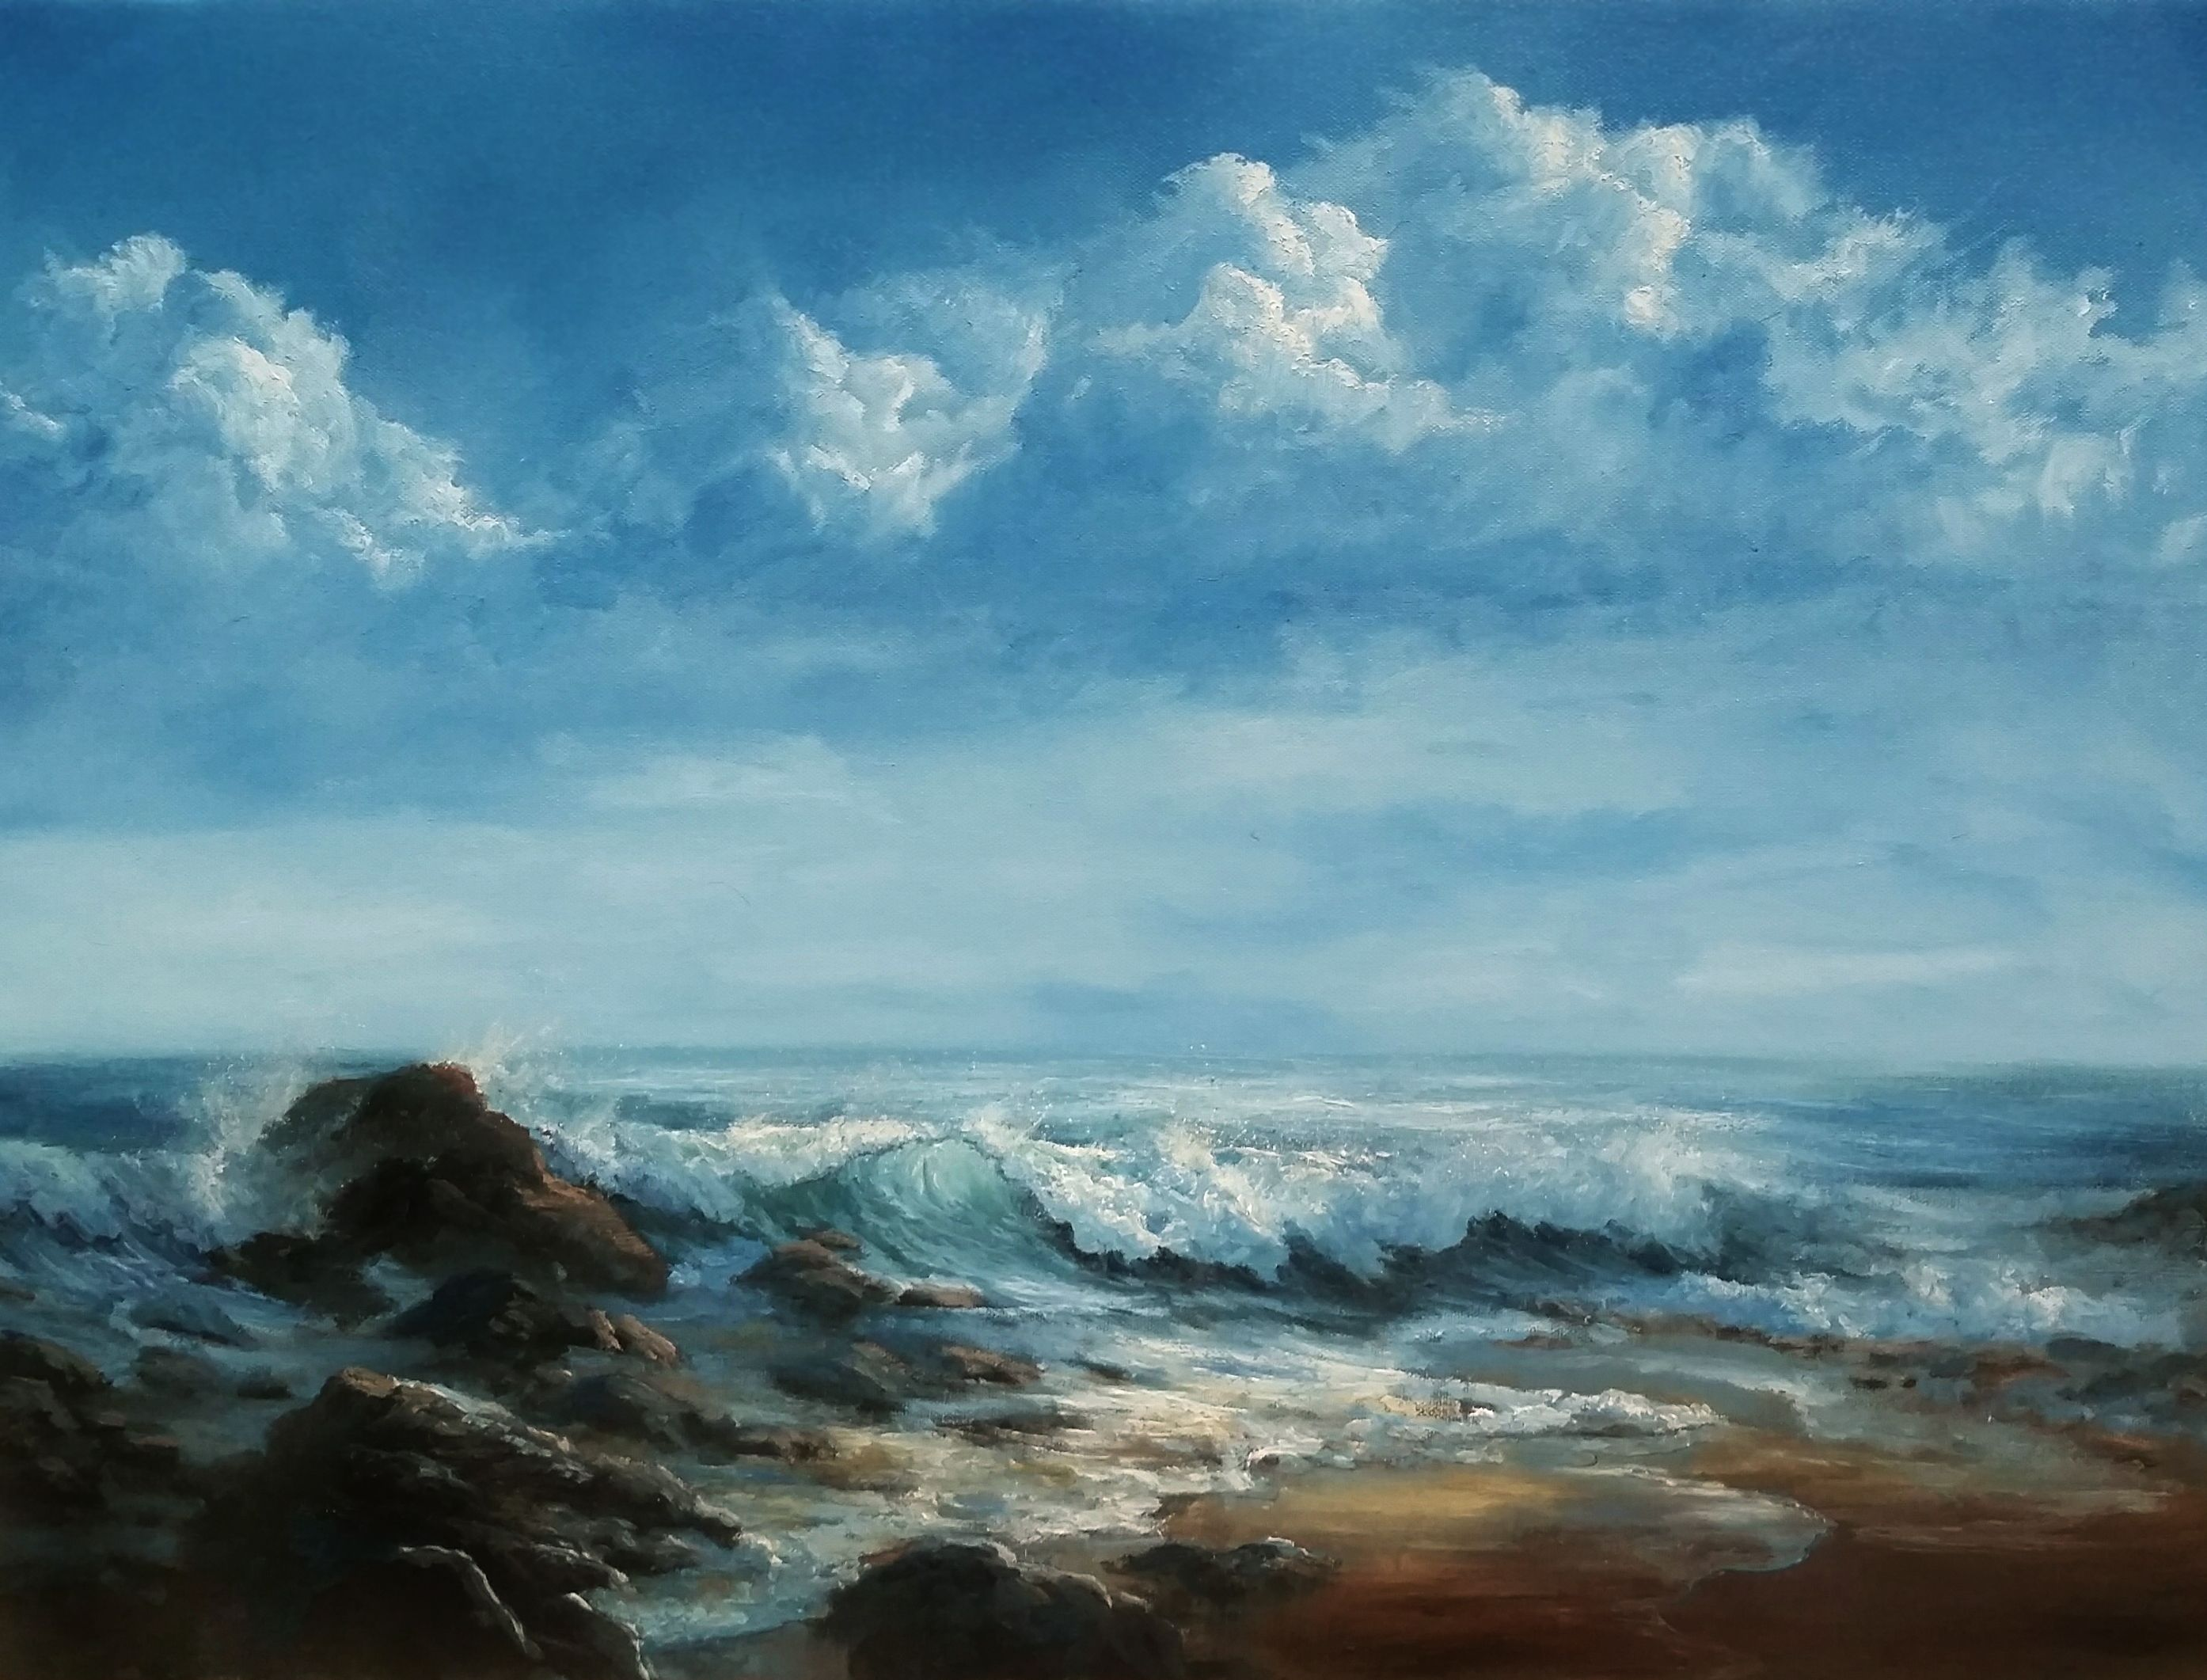 Storm Clouds Crashing Waves Oil Painting By Kevin Hill Watch Short Oil Painting Lessons On Sky Painting Oil Painting Landscape Oil Painting Ideas Landscape